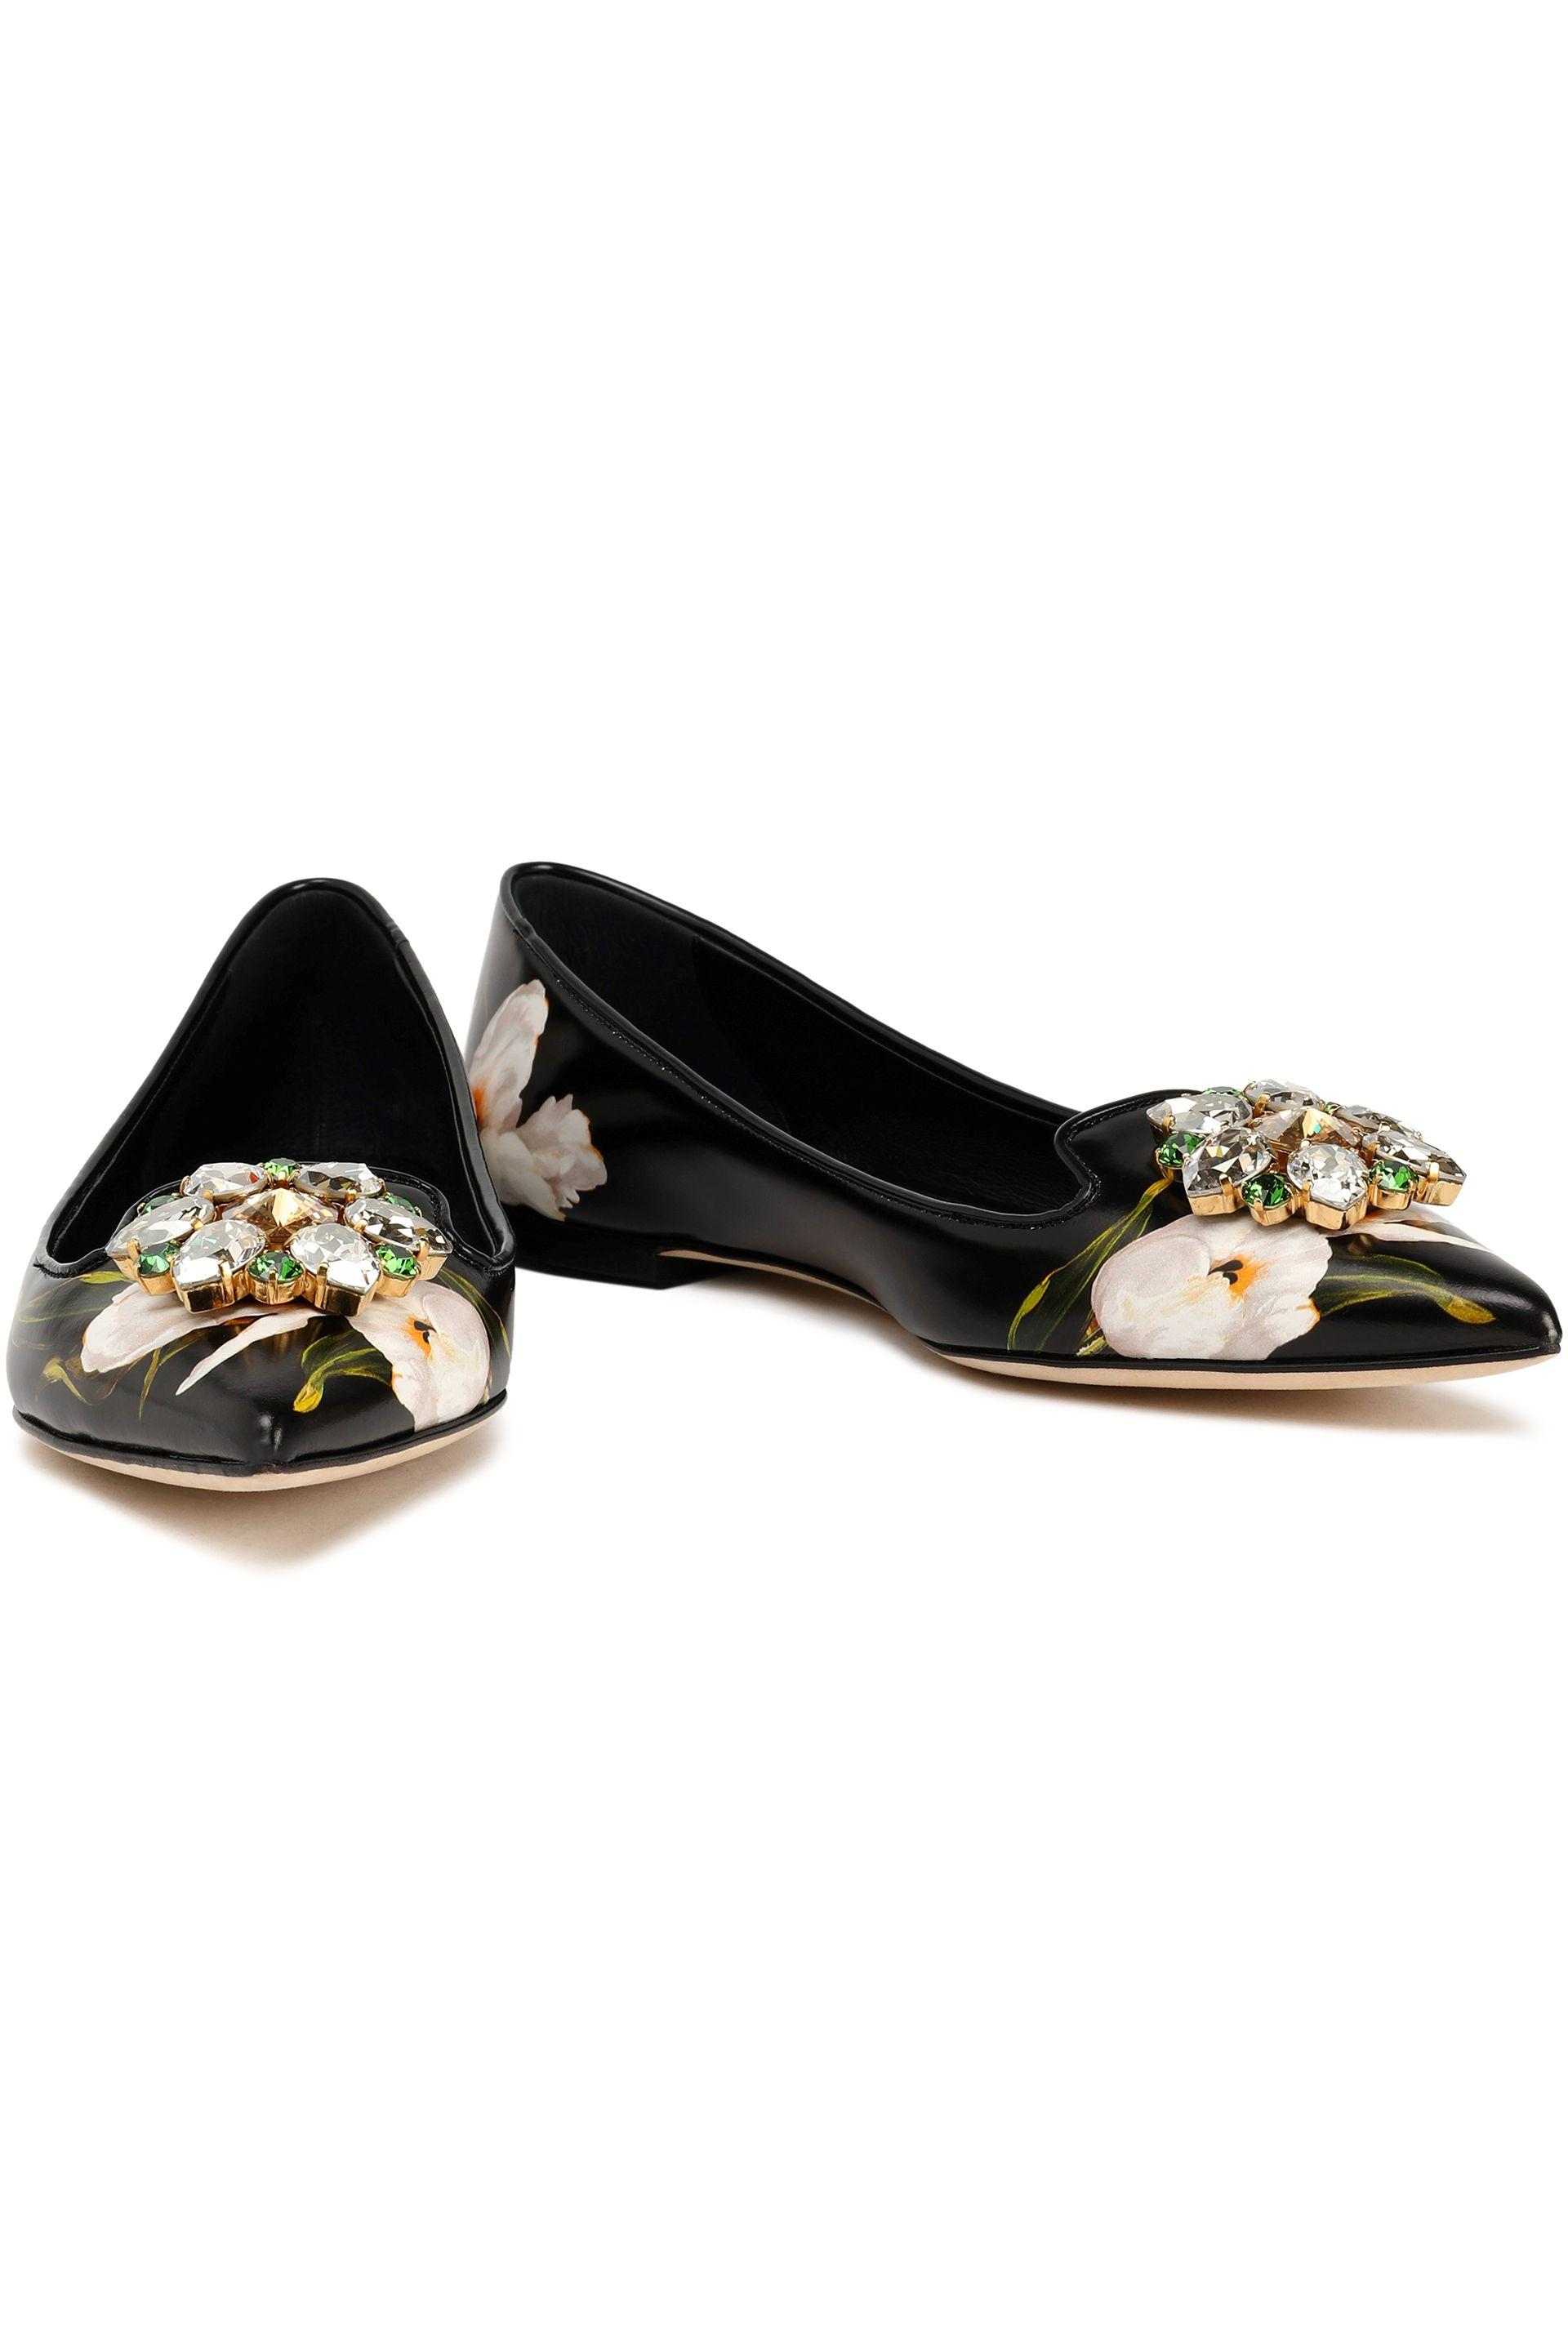 d16c0d87a3a dolce-gabbana-Black-Woman -Crystal-embellished-Floral-print-Leather-Point-toe-Flats-Black.jpeg